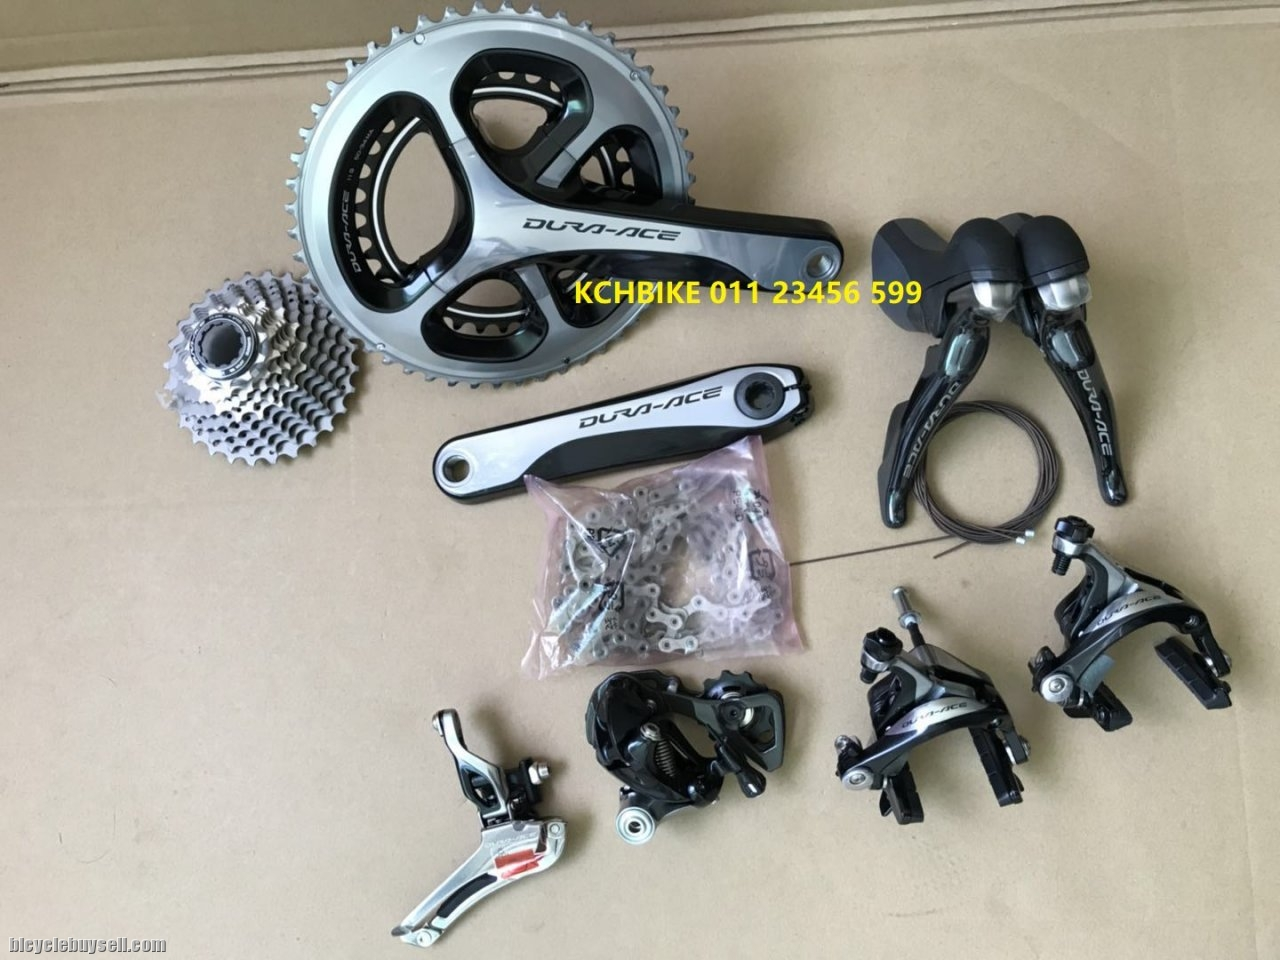 Dura Ace 9000 >> Shimano Dura Ace 9000 Groupset Free Postage